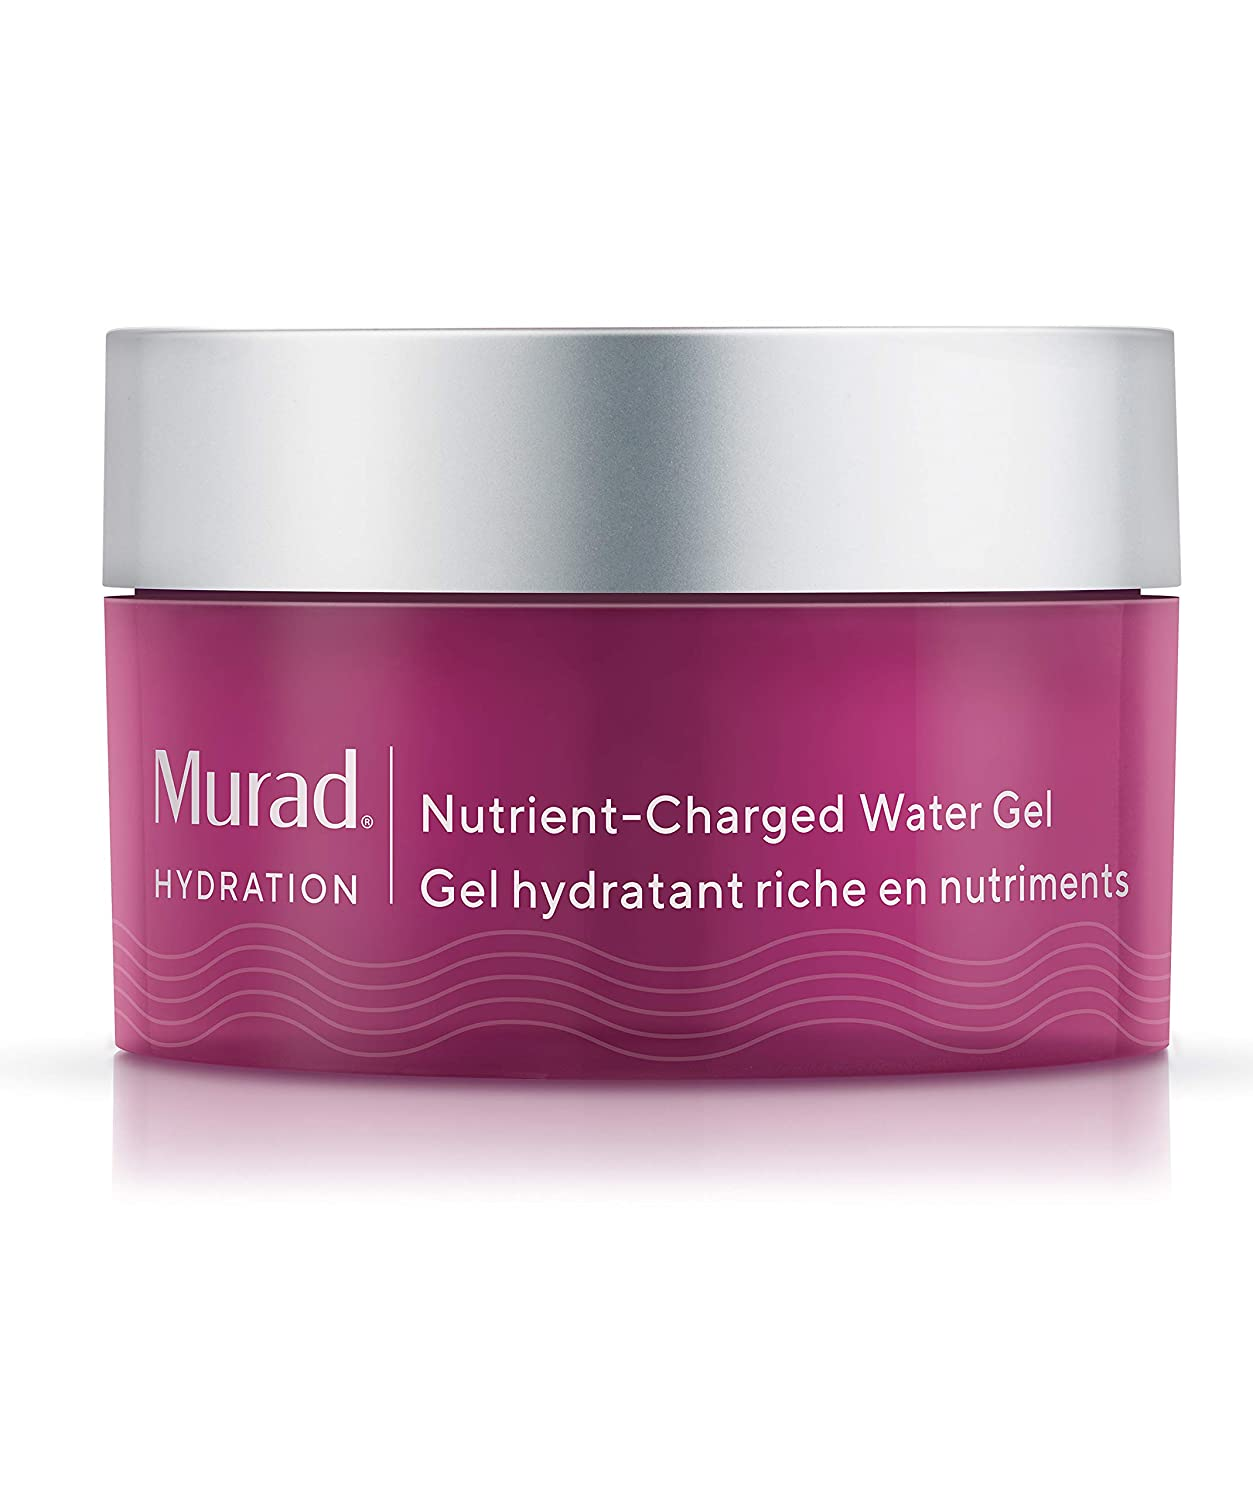 Murad Hydration Nutrient-Charged Water Gel - Hydrating Face Moisturizer